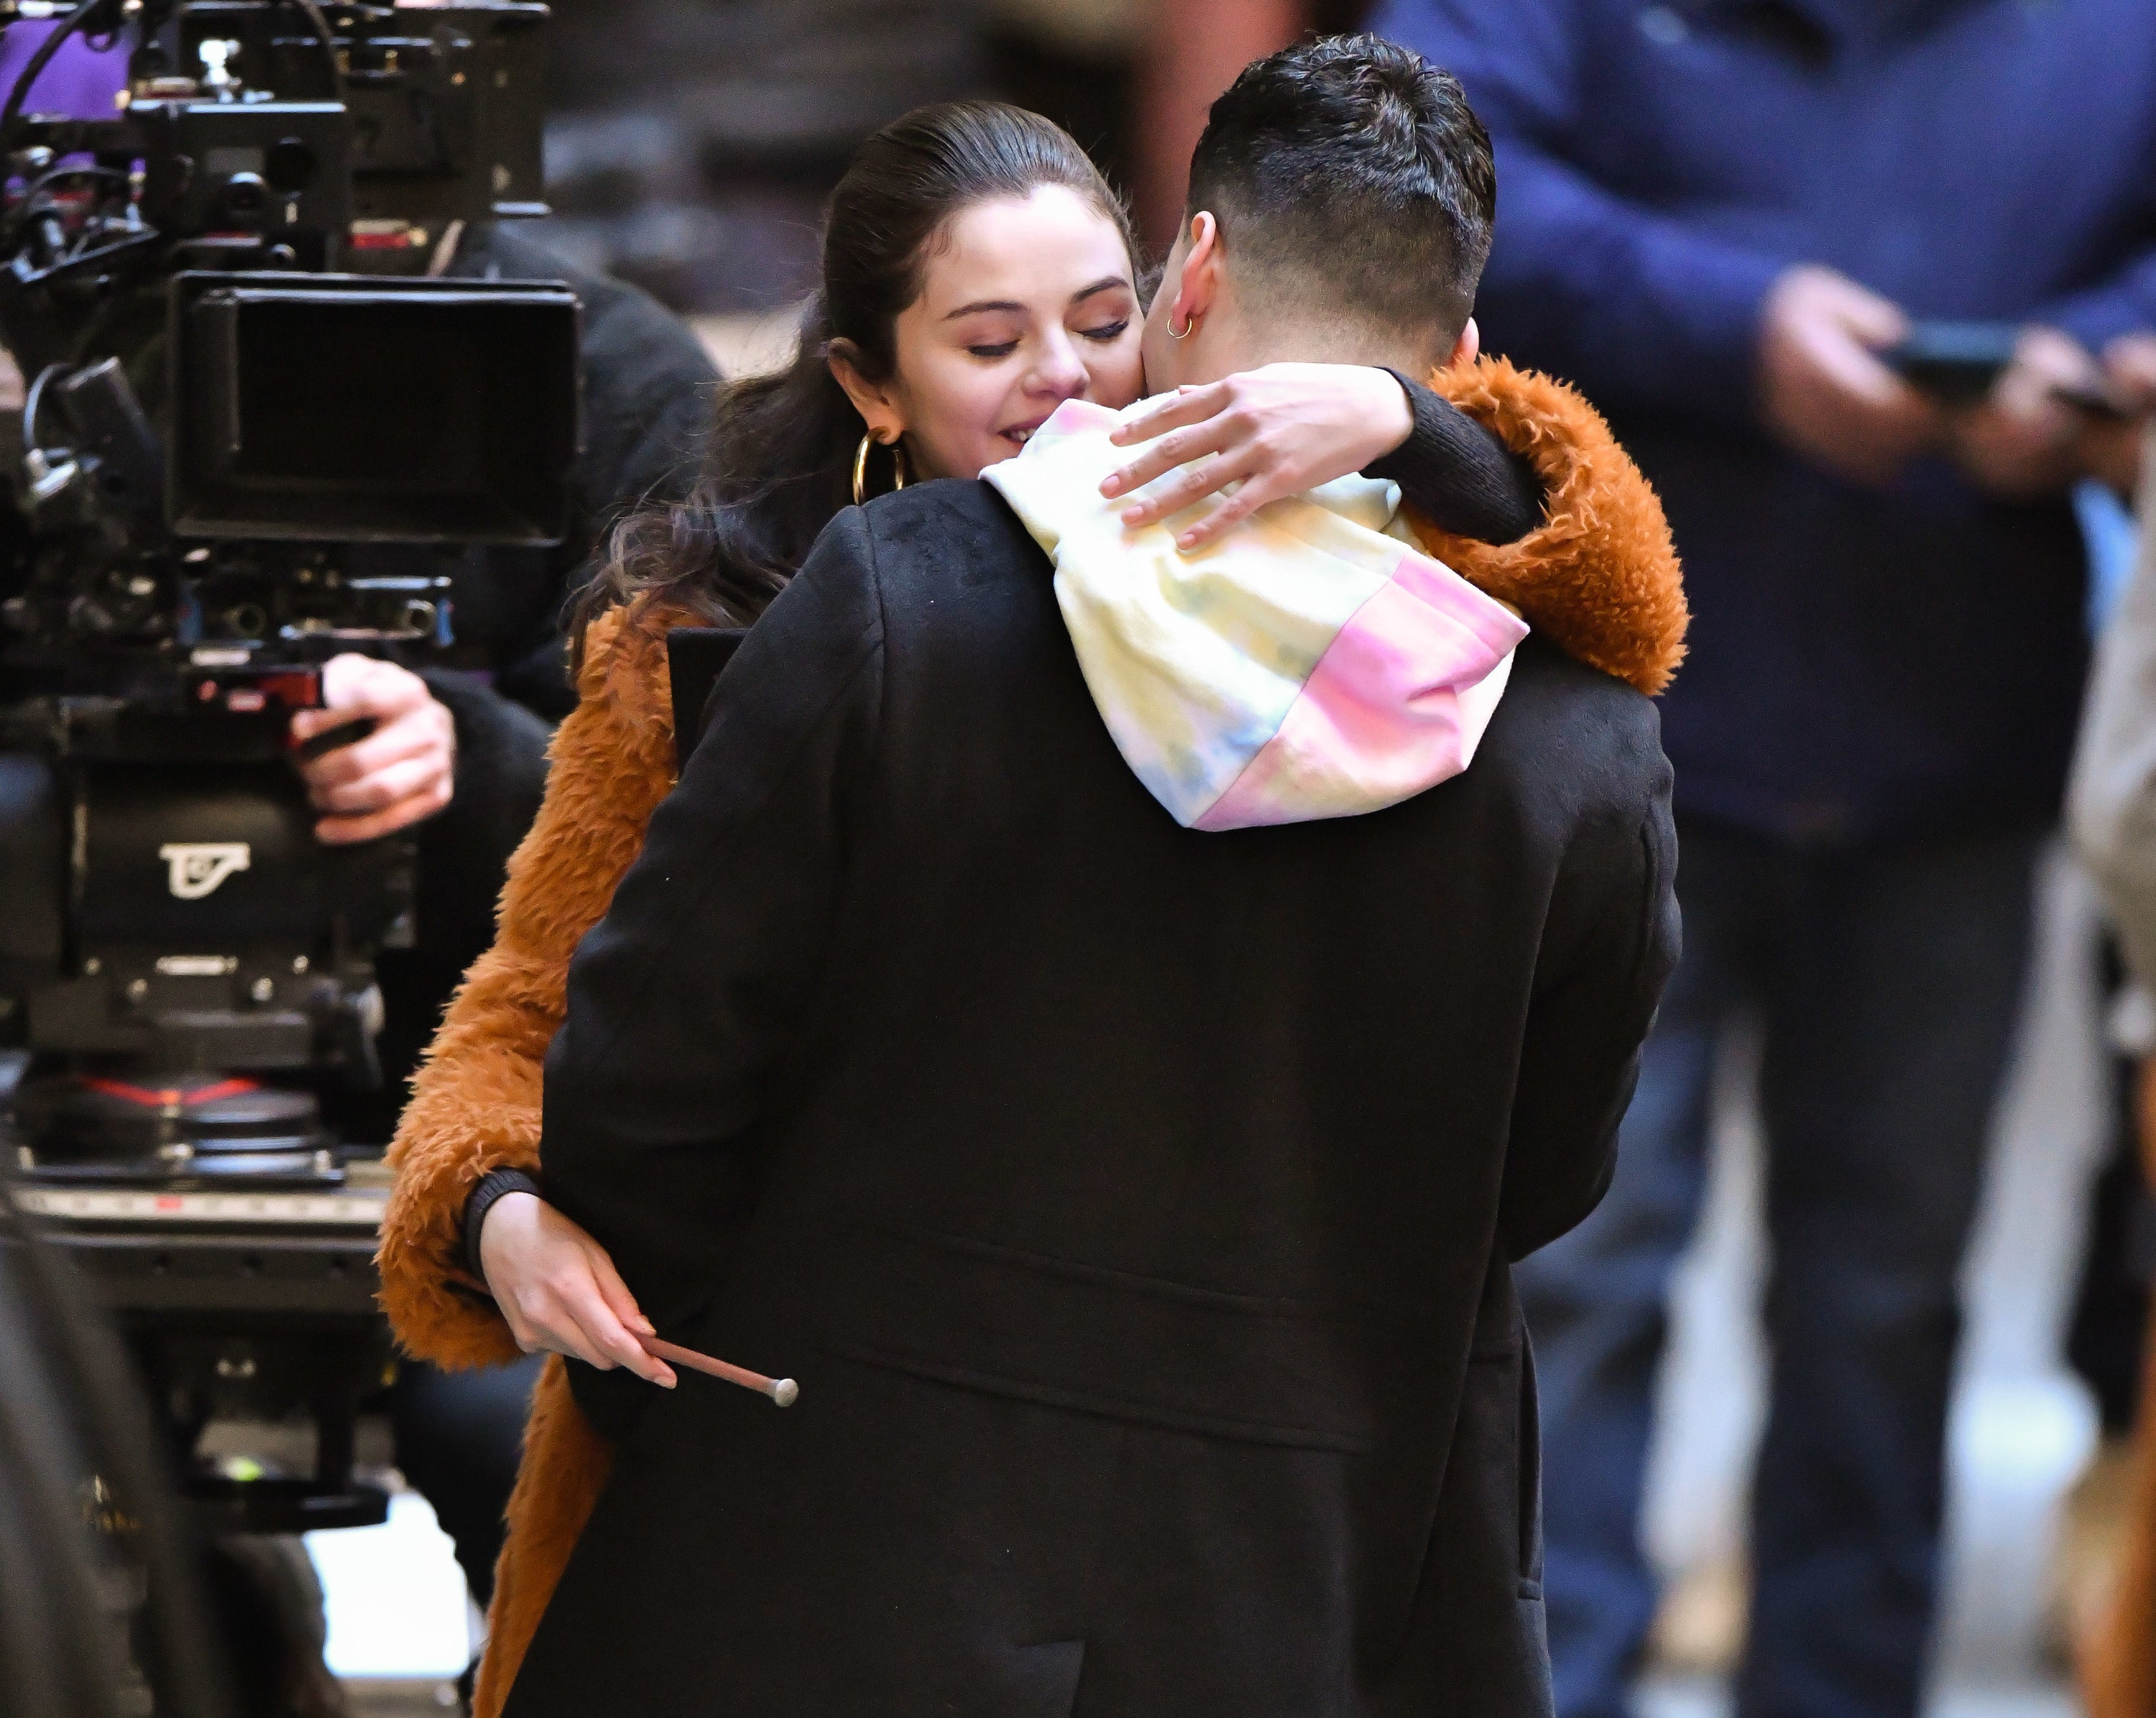 Selena and Aaron hug in front of a camera